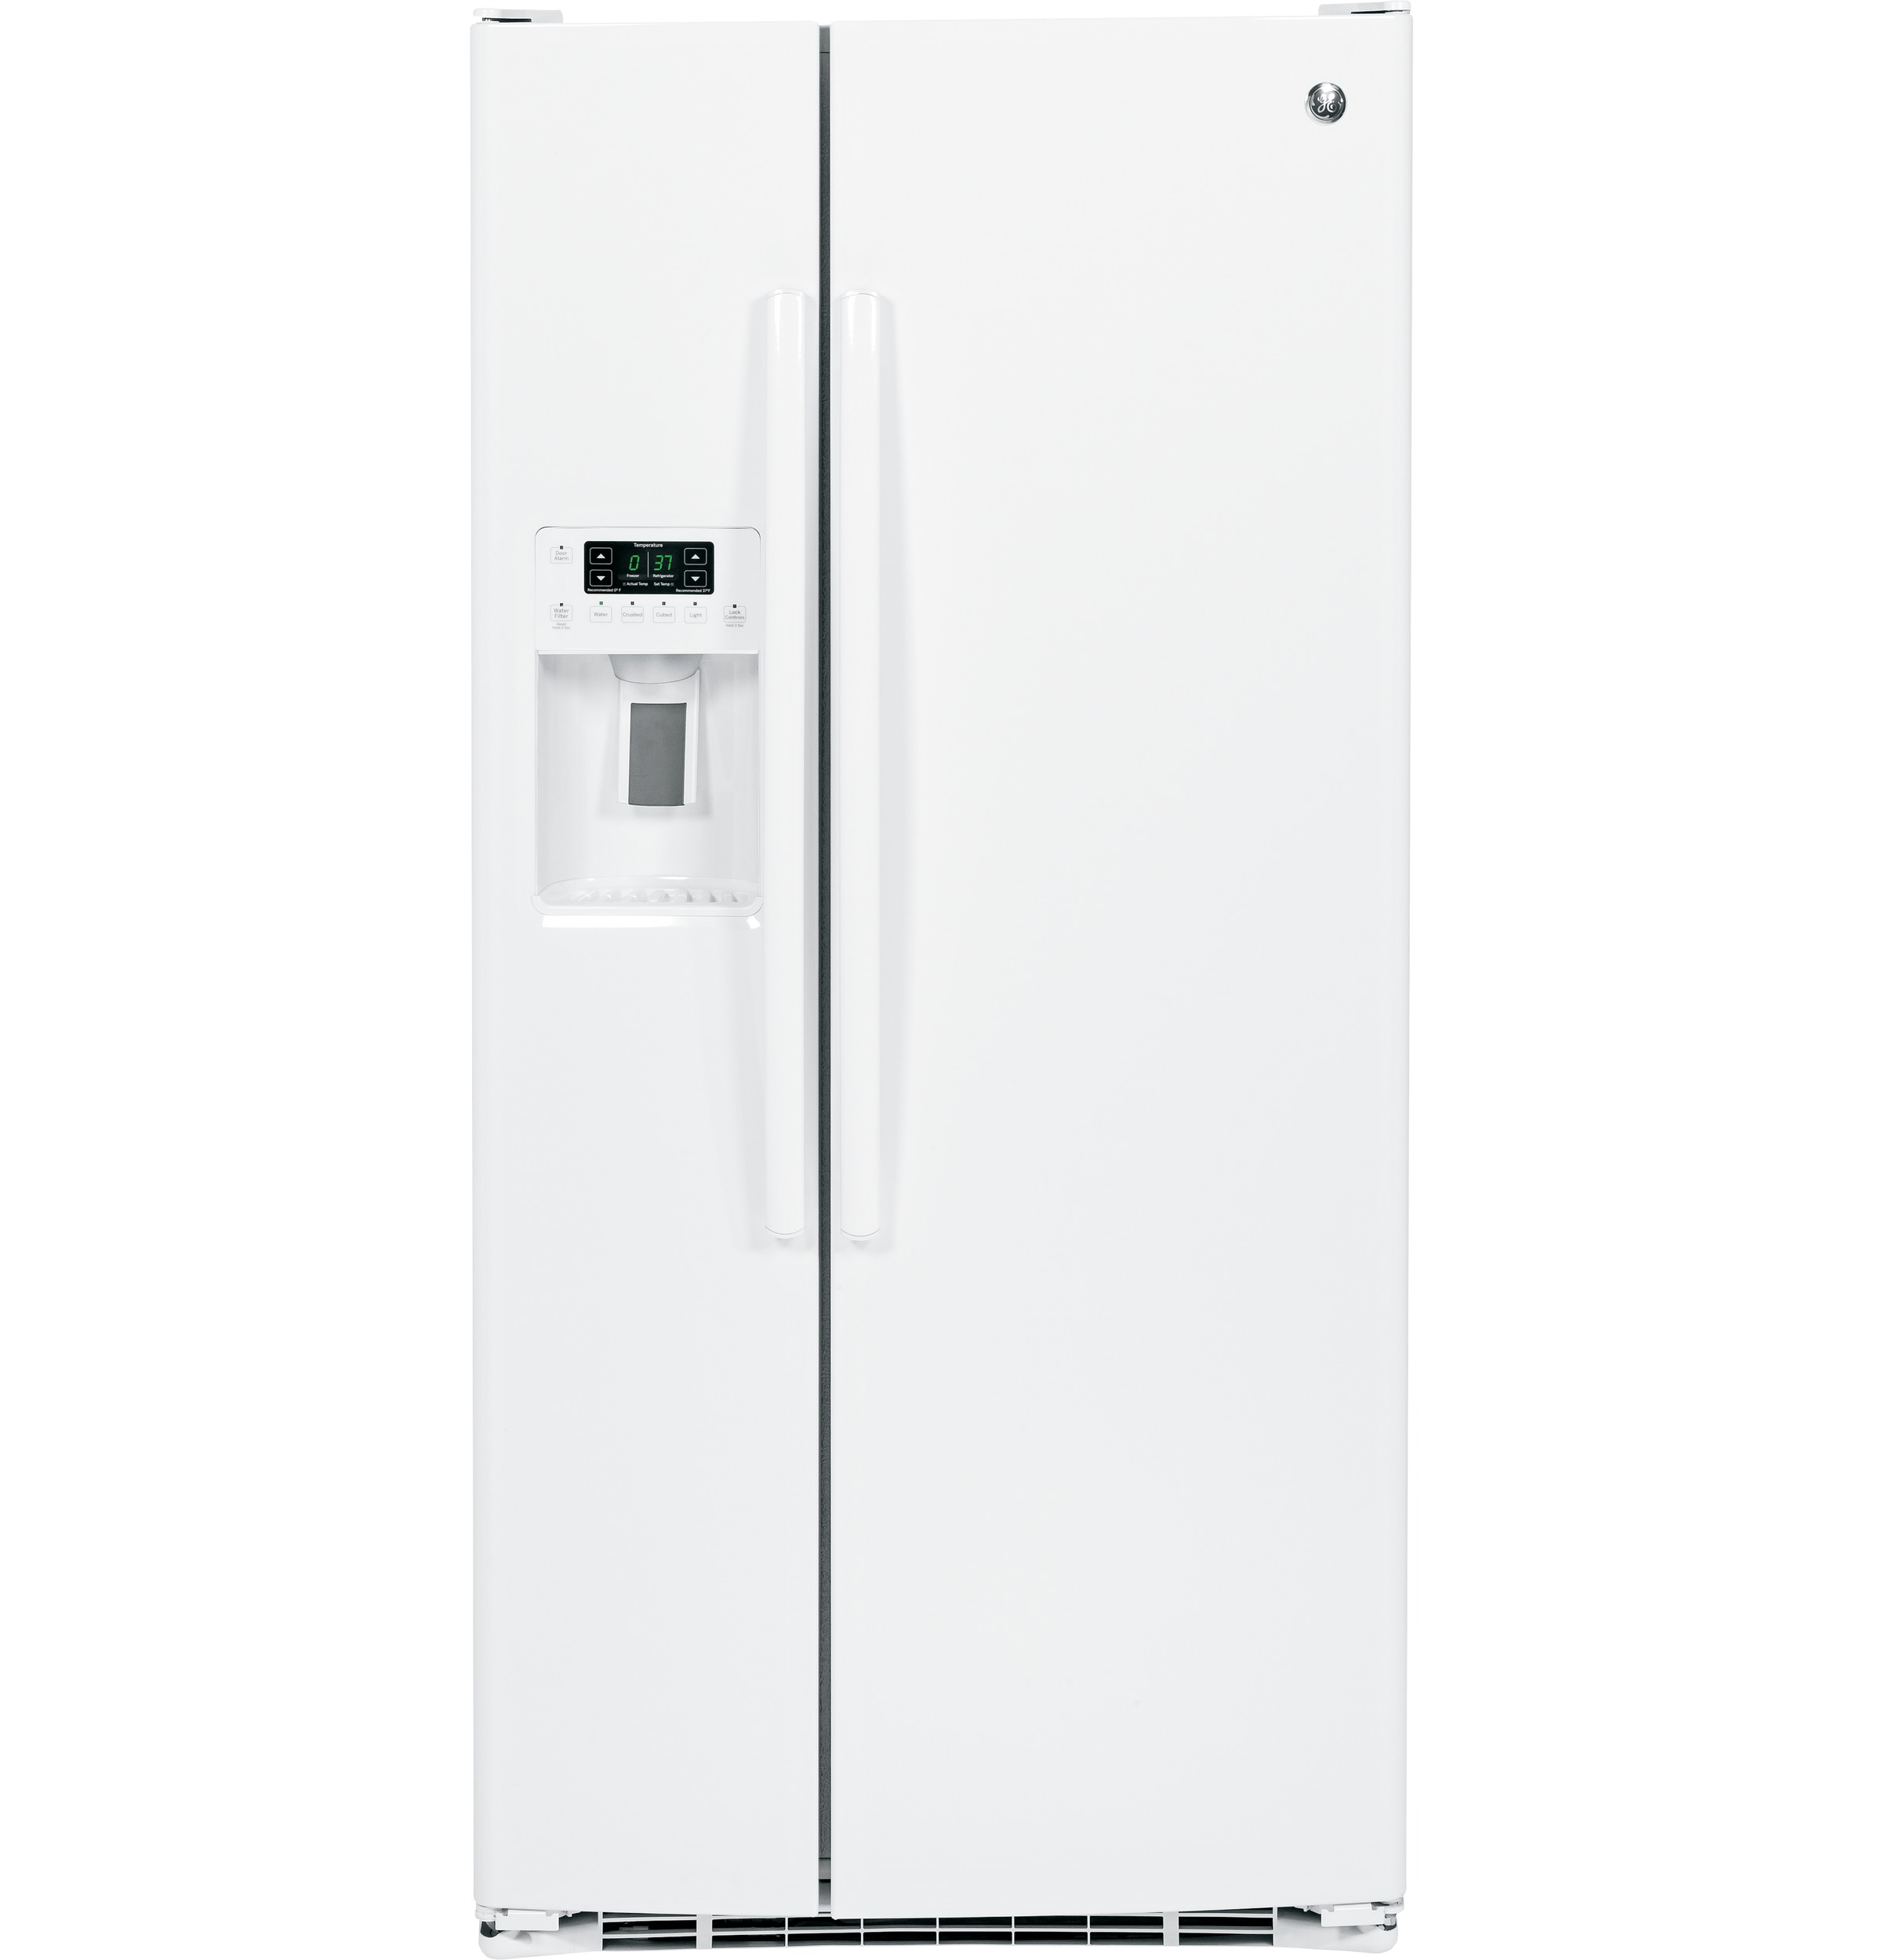 Model: GSE23GGKWW | GE GE® ENERGY STAR® 23.2 Cu. Ft. Side-By-Side Refrigerator